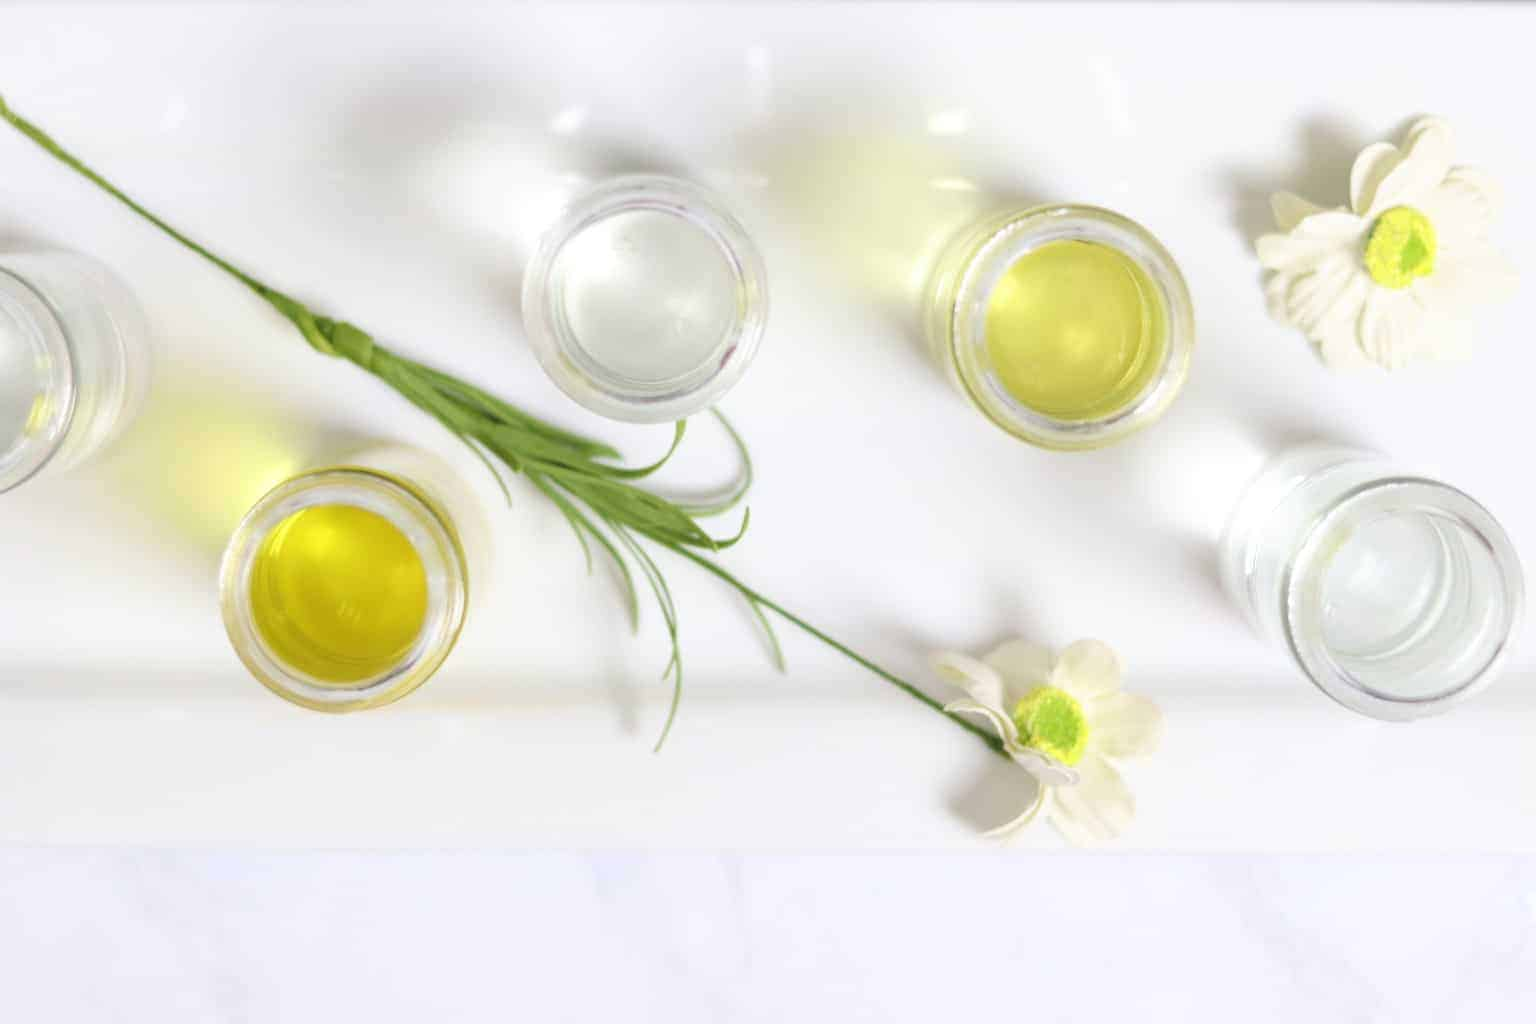 Carrier oils in glass jars on white table with flowers around them.